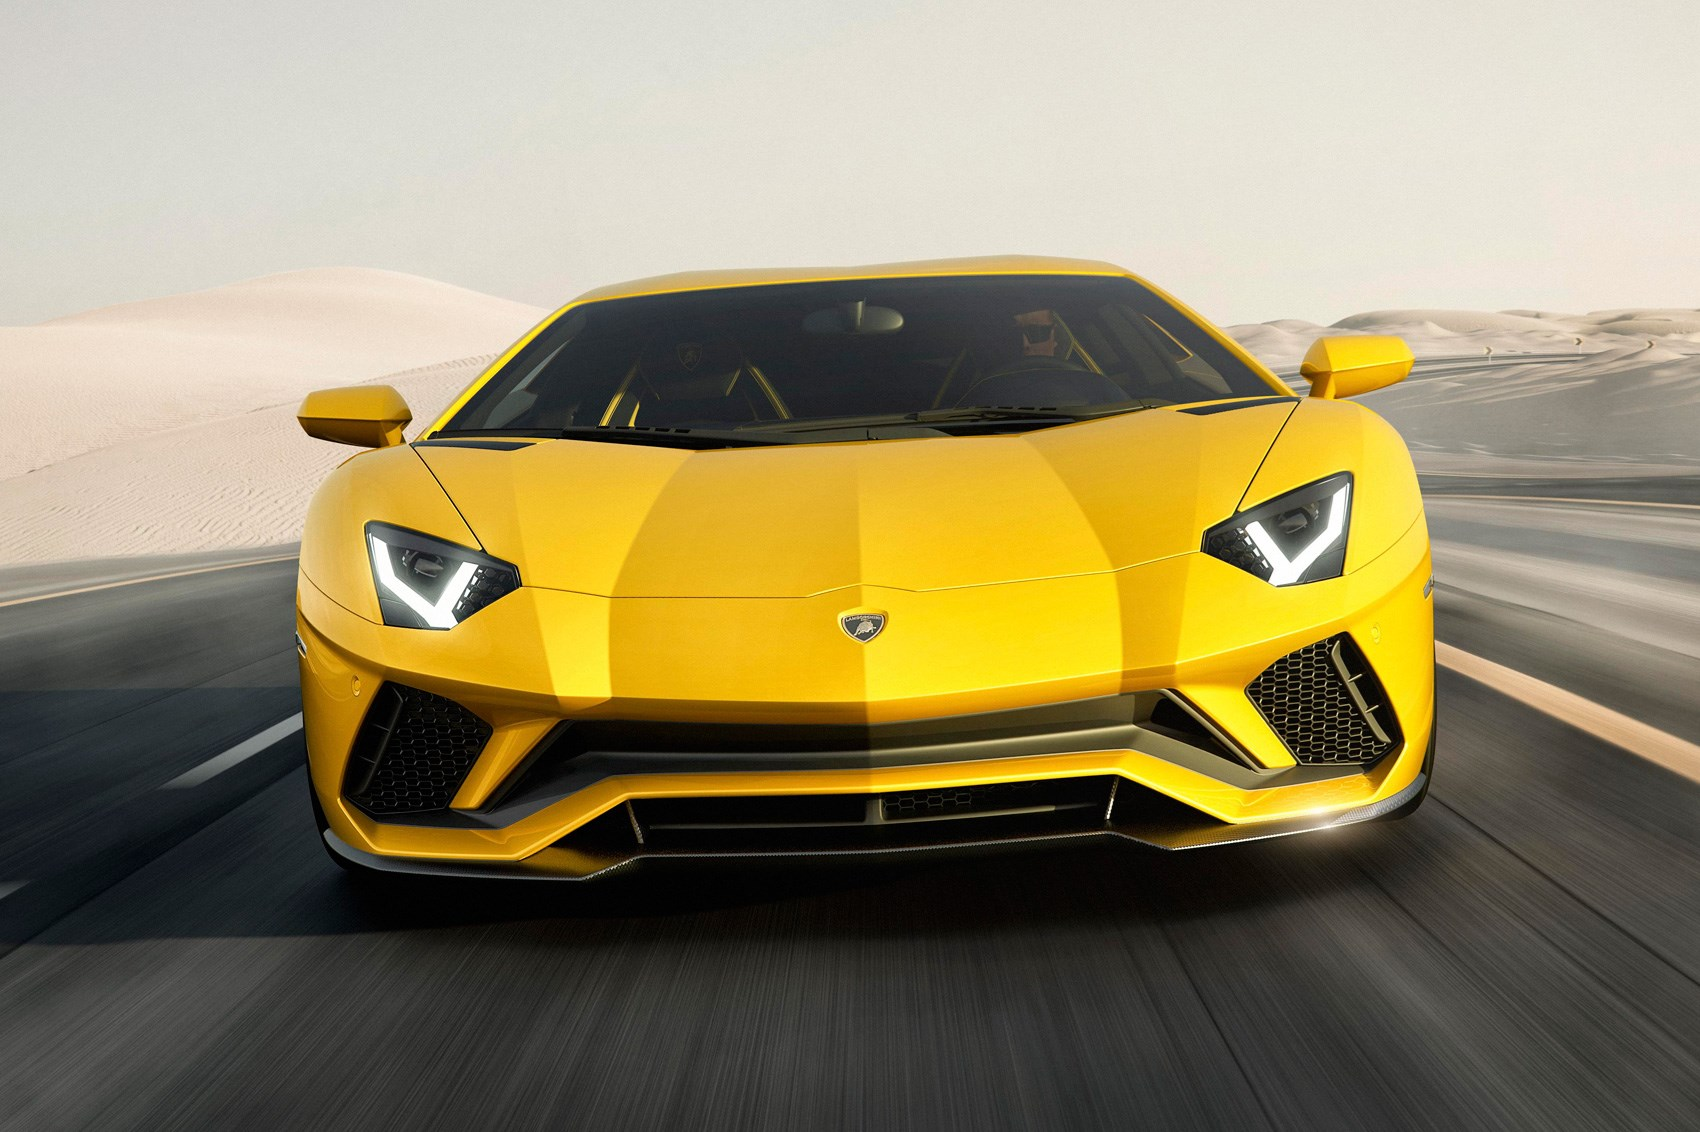 New 2017 Lamborghini Aventador S unveiled | CAR Magazine